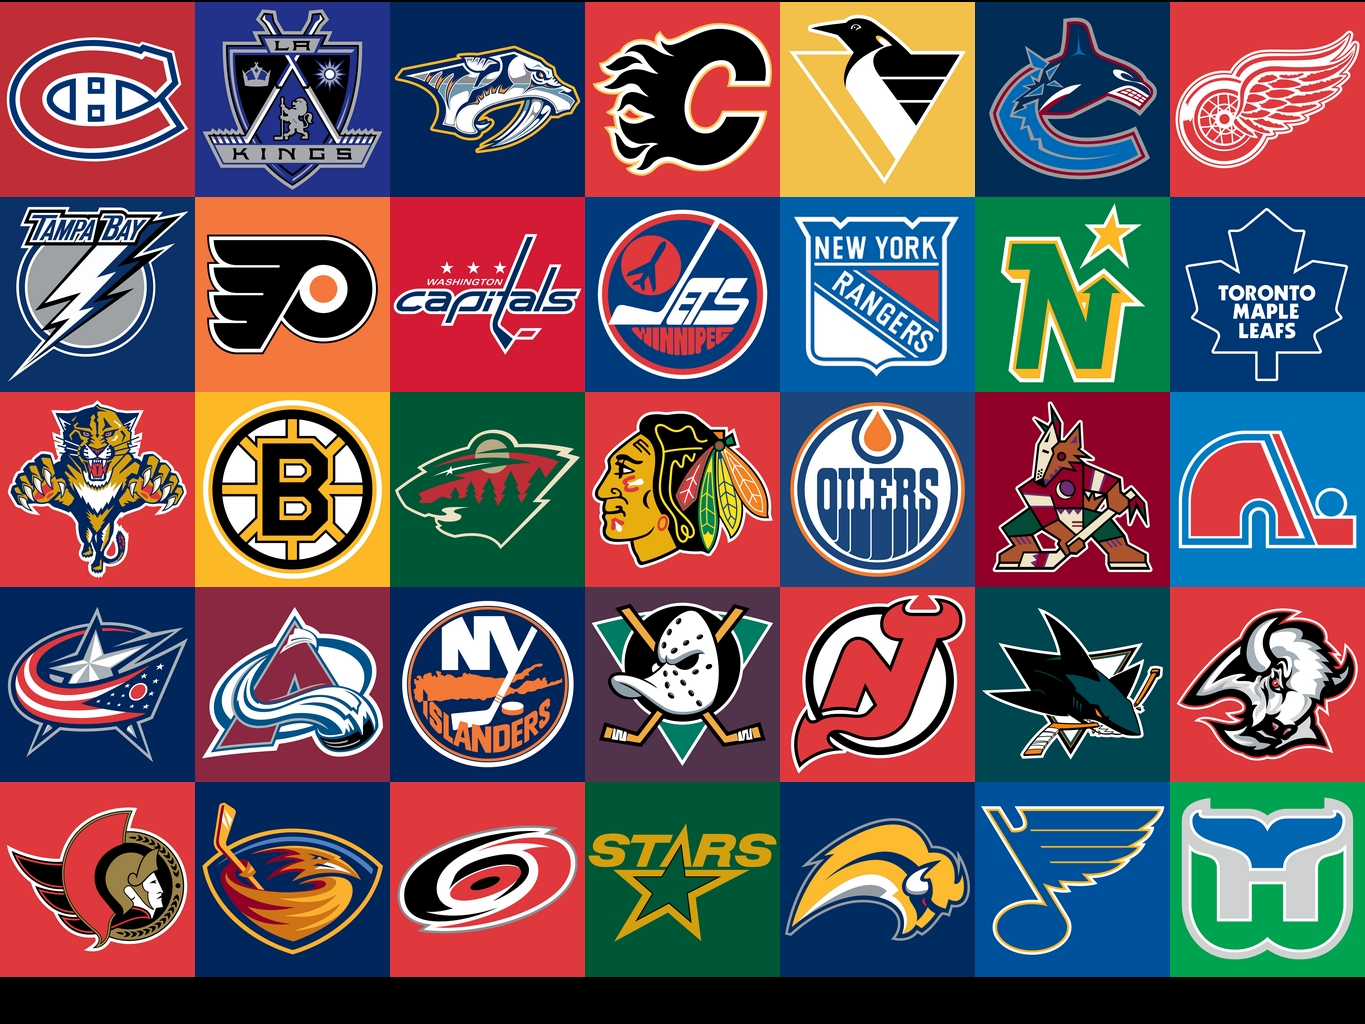 http://2.bp.blogspot.com/_1KiCOLVSWwE/TU66gsahgwI/AAAAAAAAA2E/Q2lSIY_EoDQ/s1600/NHL_Background_Logos.jpg